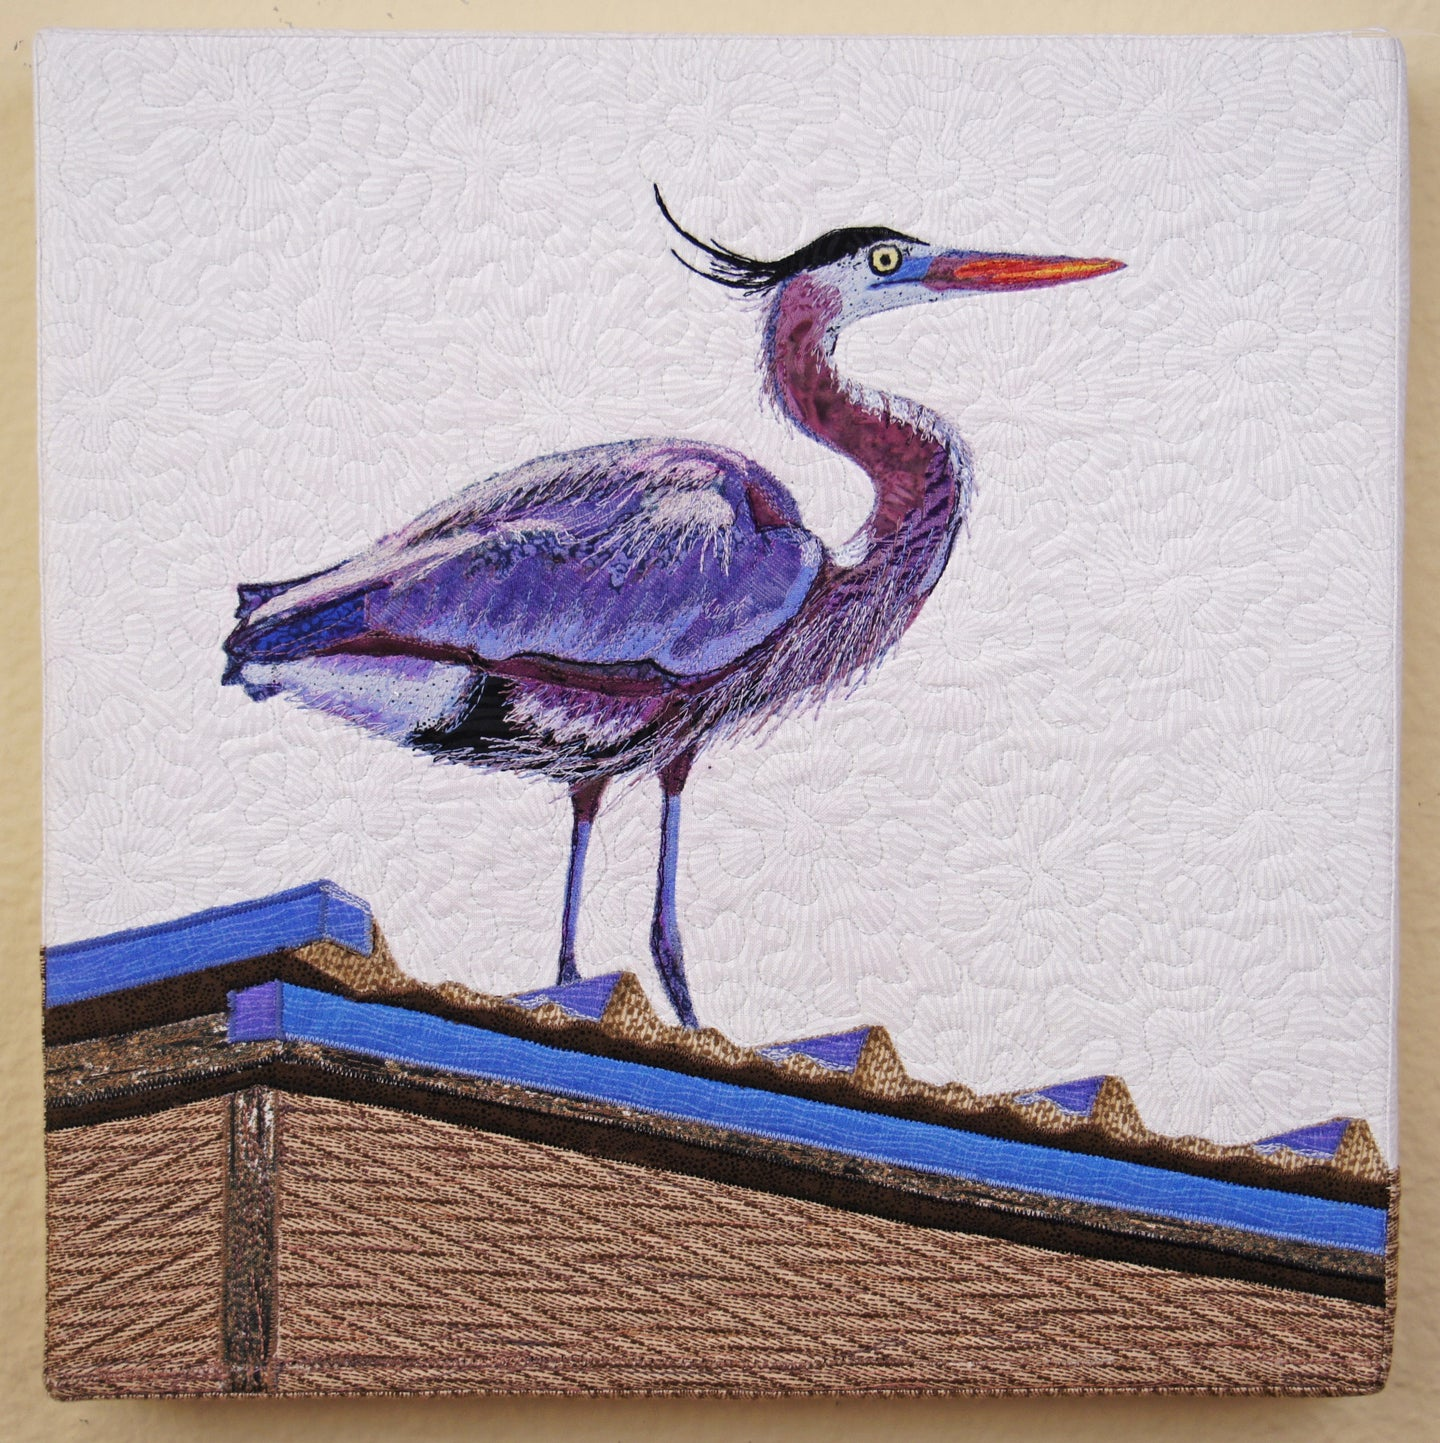 My Blue Heron by Sara Sharp